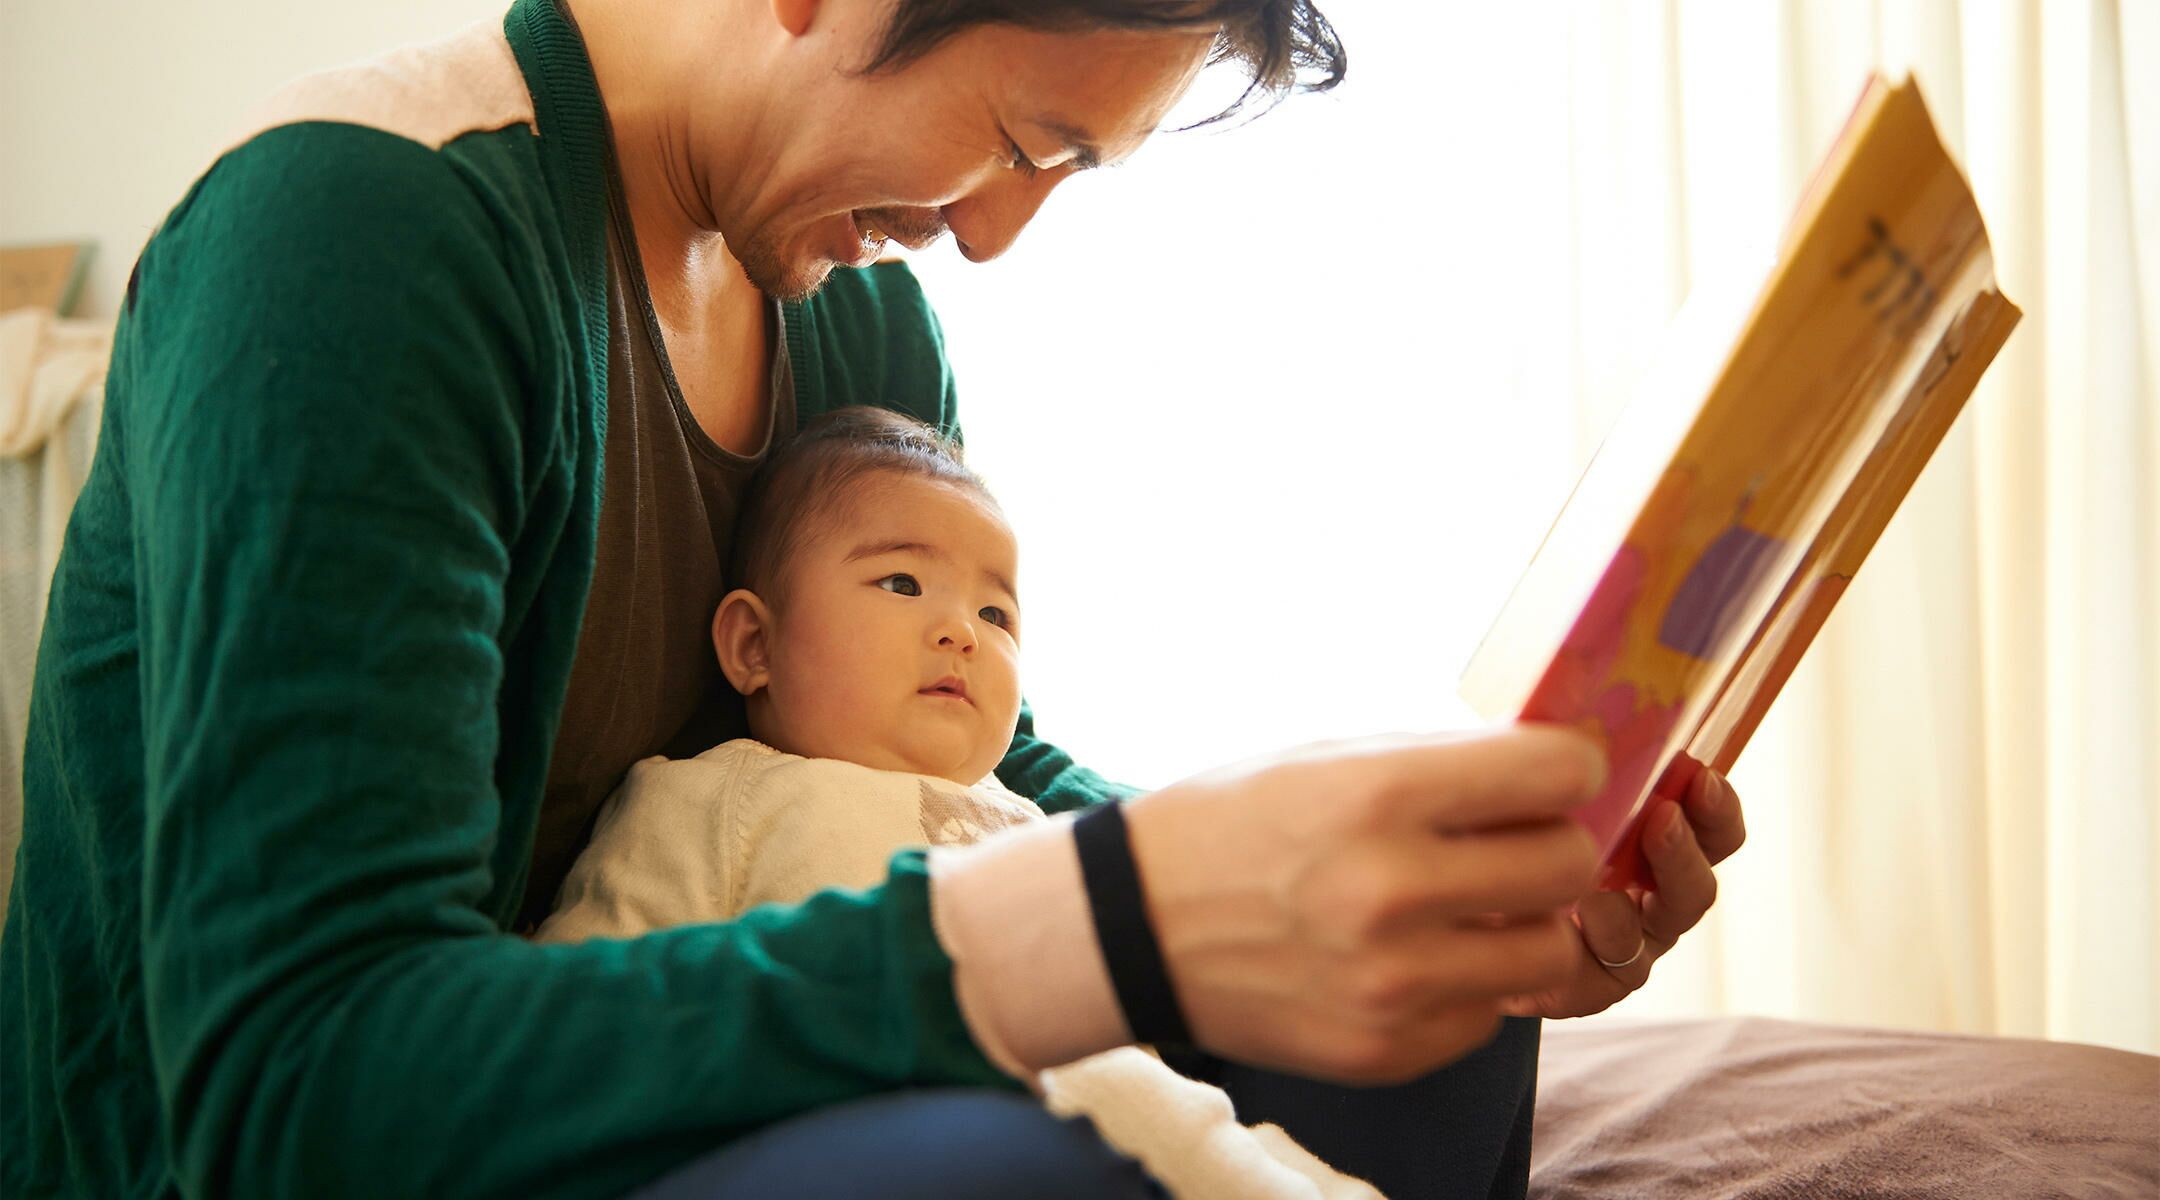 Q&A: Fun Books to Read to Baby?